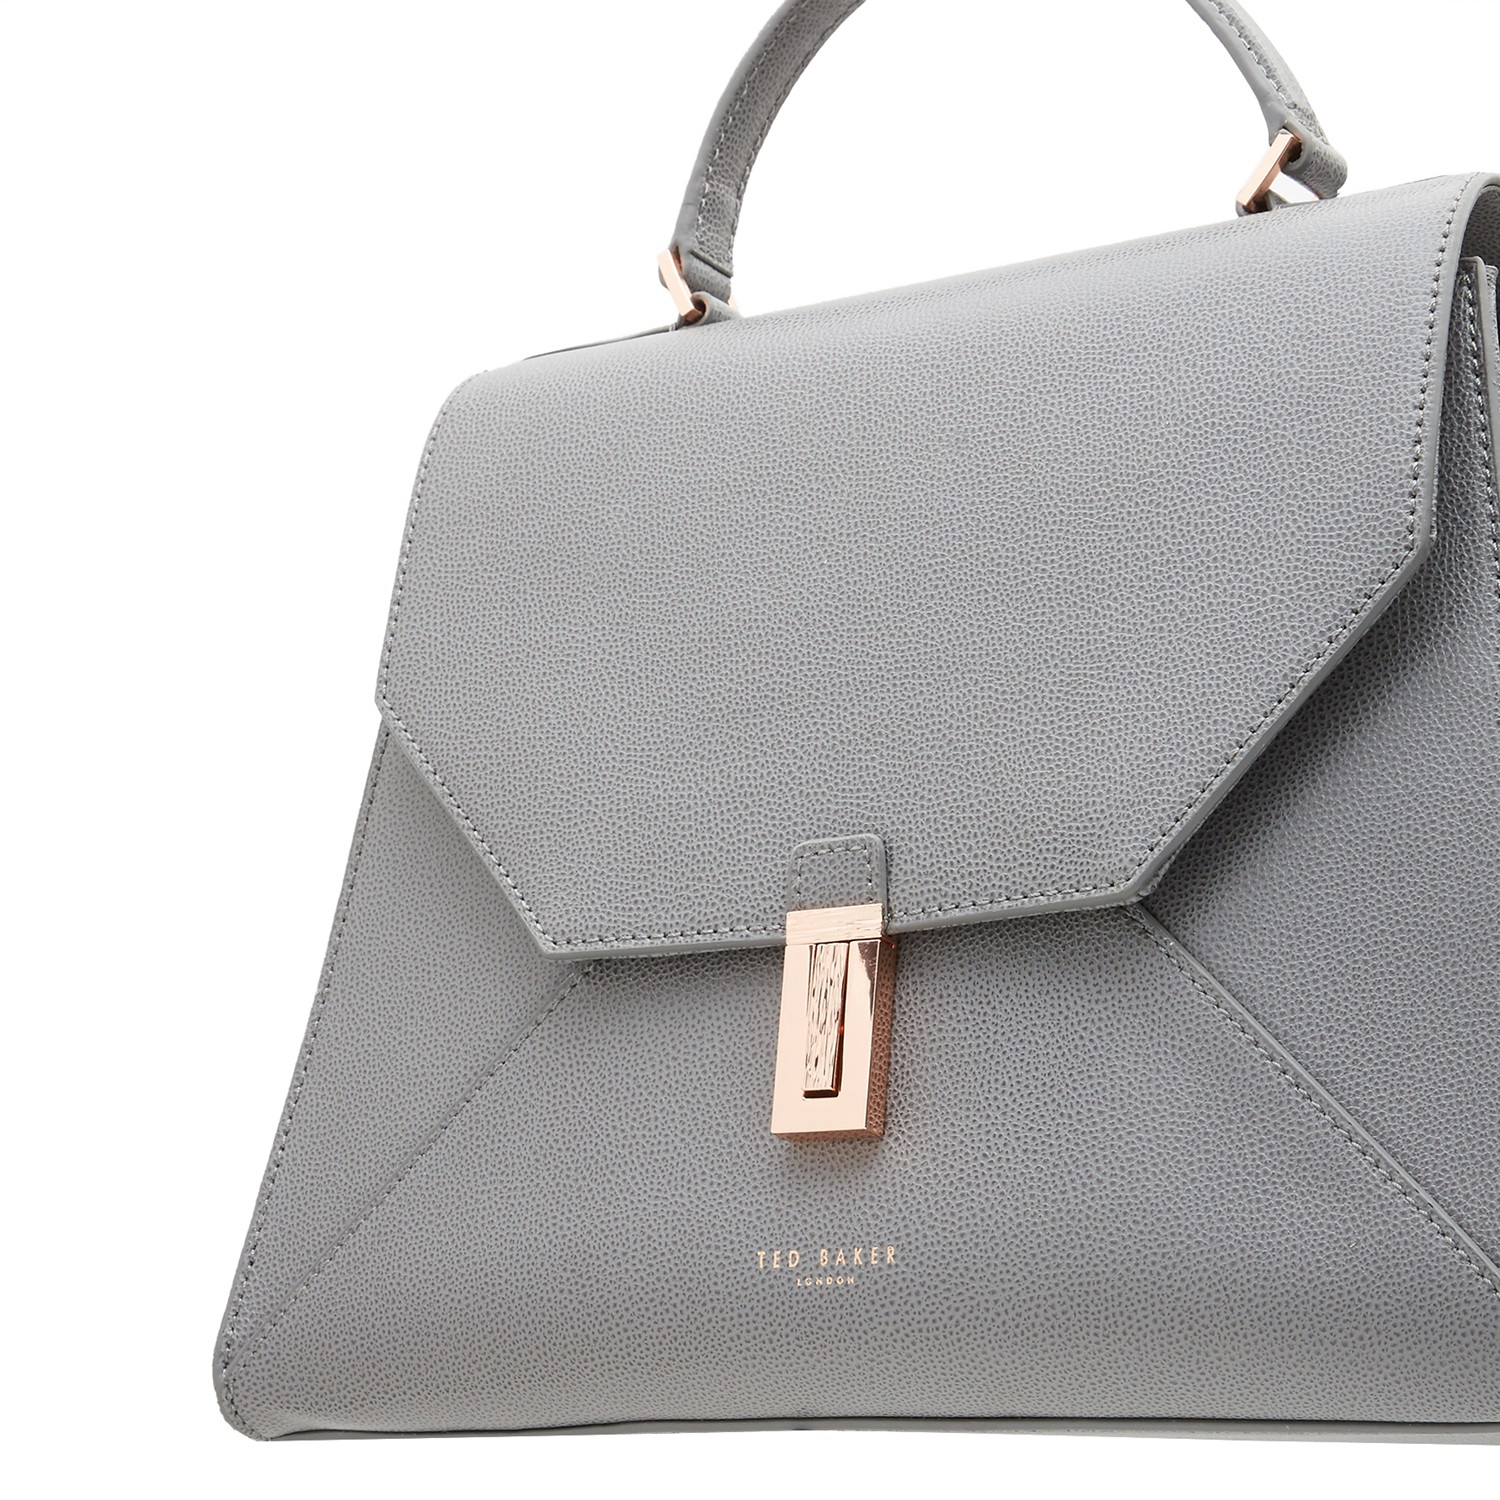 c43012d1e4b Ted Baker Ellice Leather Top Handle Grab Bag in Gray - Lyst